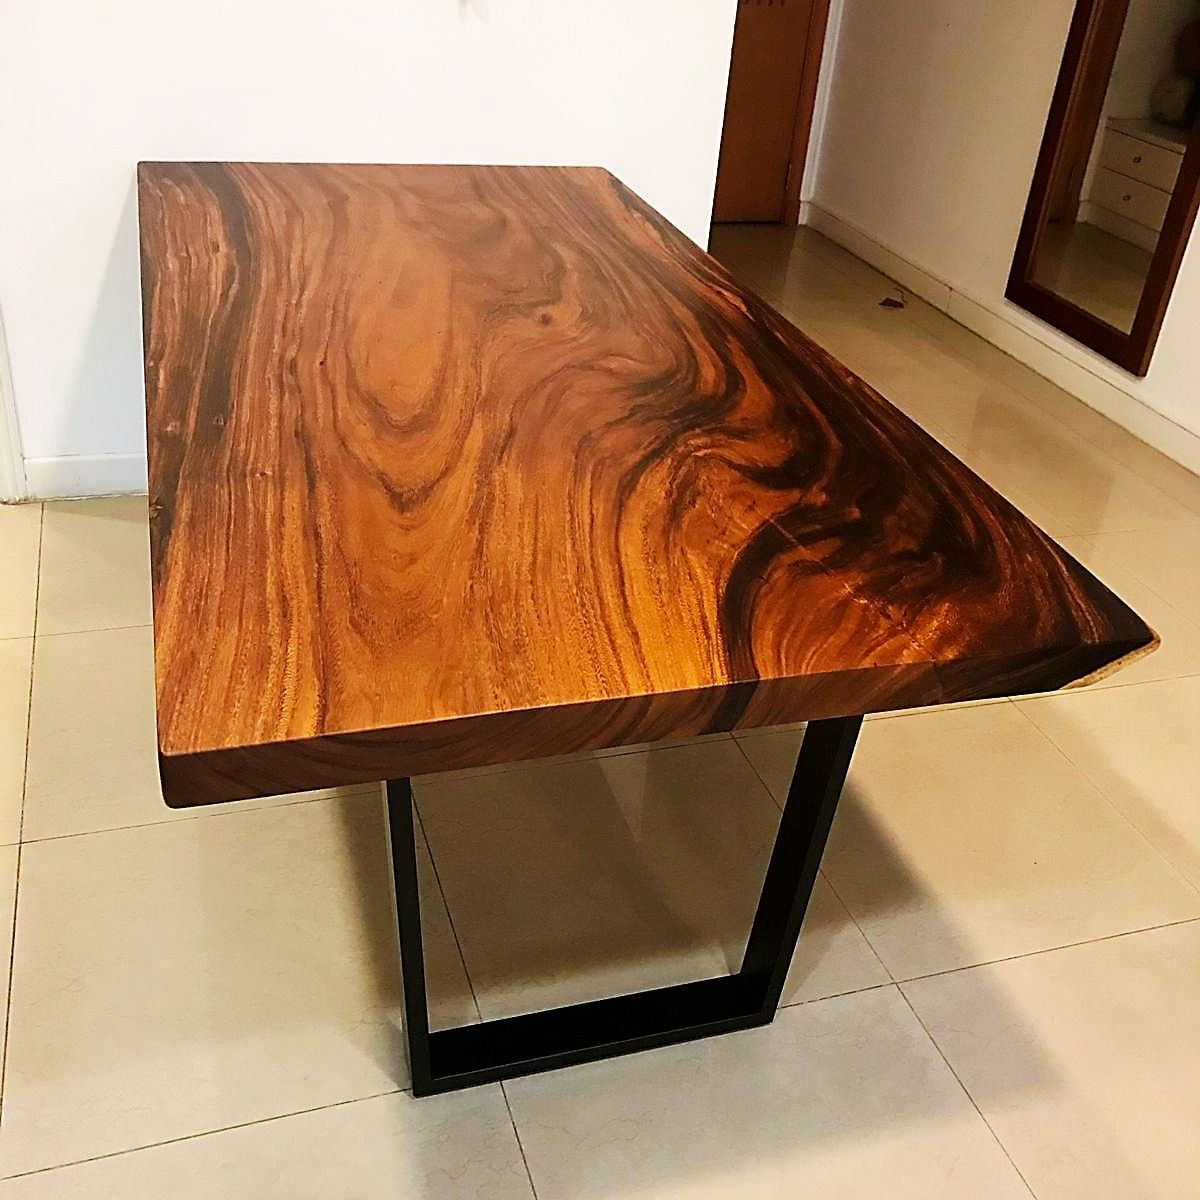 Collectif Designs Suar Wood Dining Table For Our Client Https Collectifdesigns Com Suarwood Teakwood Sonowood Rosewood Tamarindwood Asamwood Design